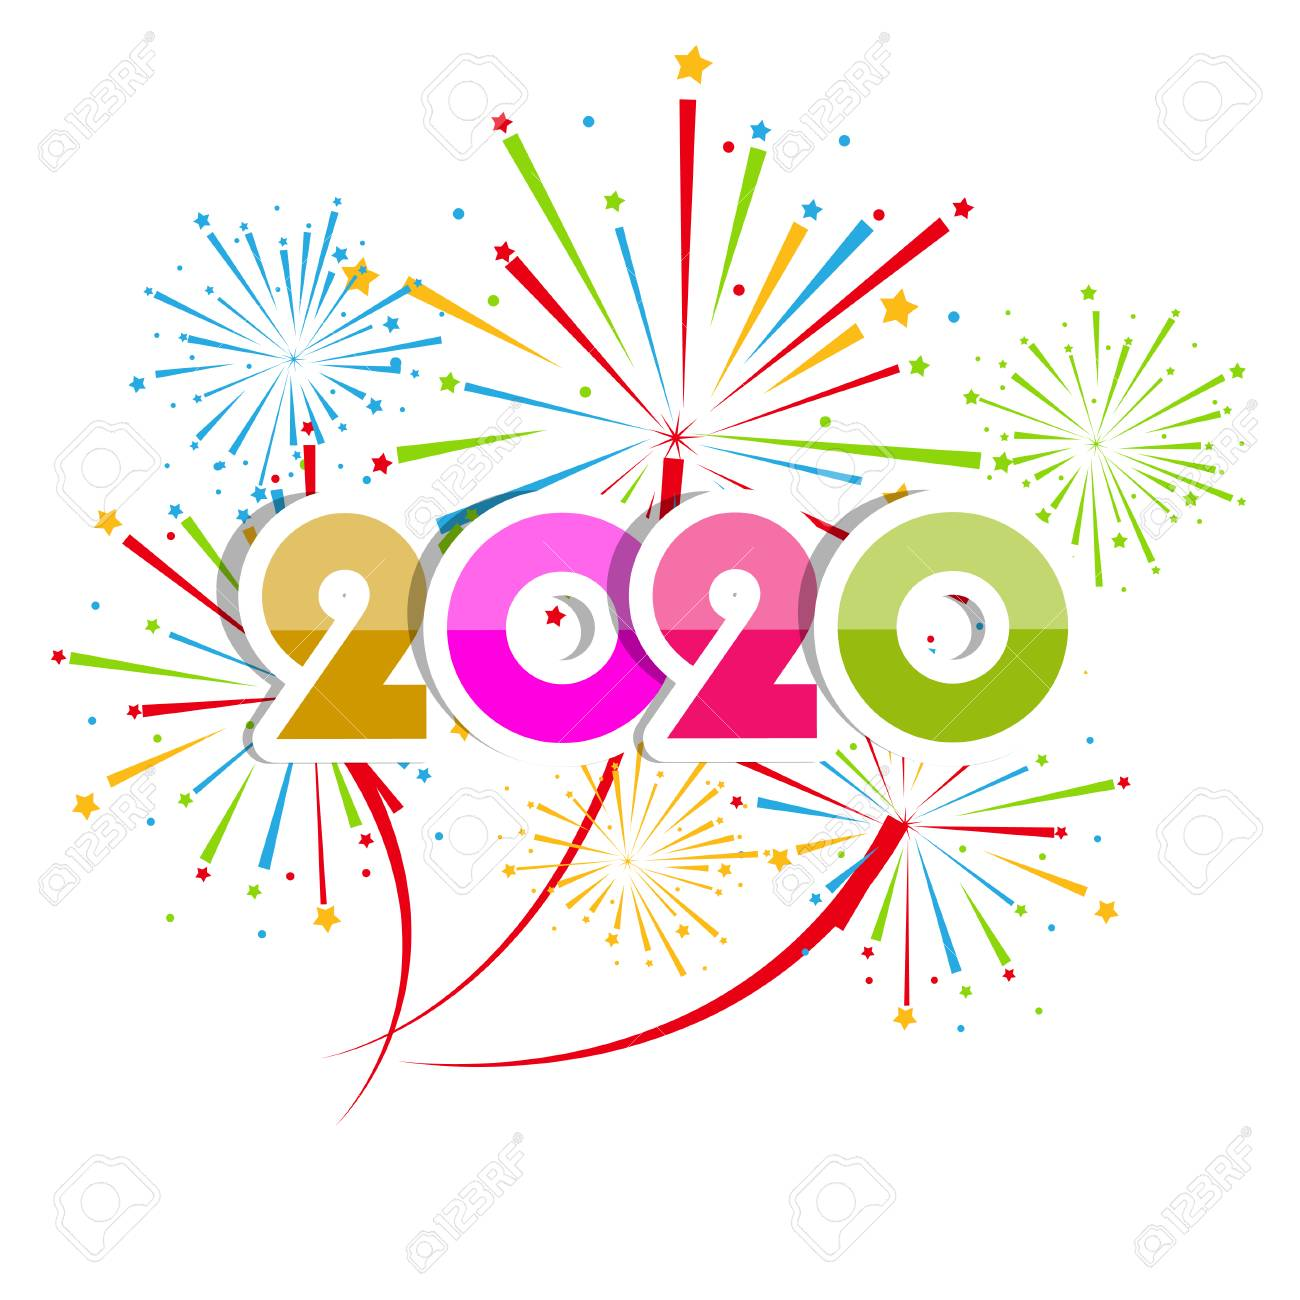 happy new year 2020 background with fireworks royalty free cliparts vectors and stock illustration image 112383849 happy new year 2020 background with fireworks